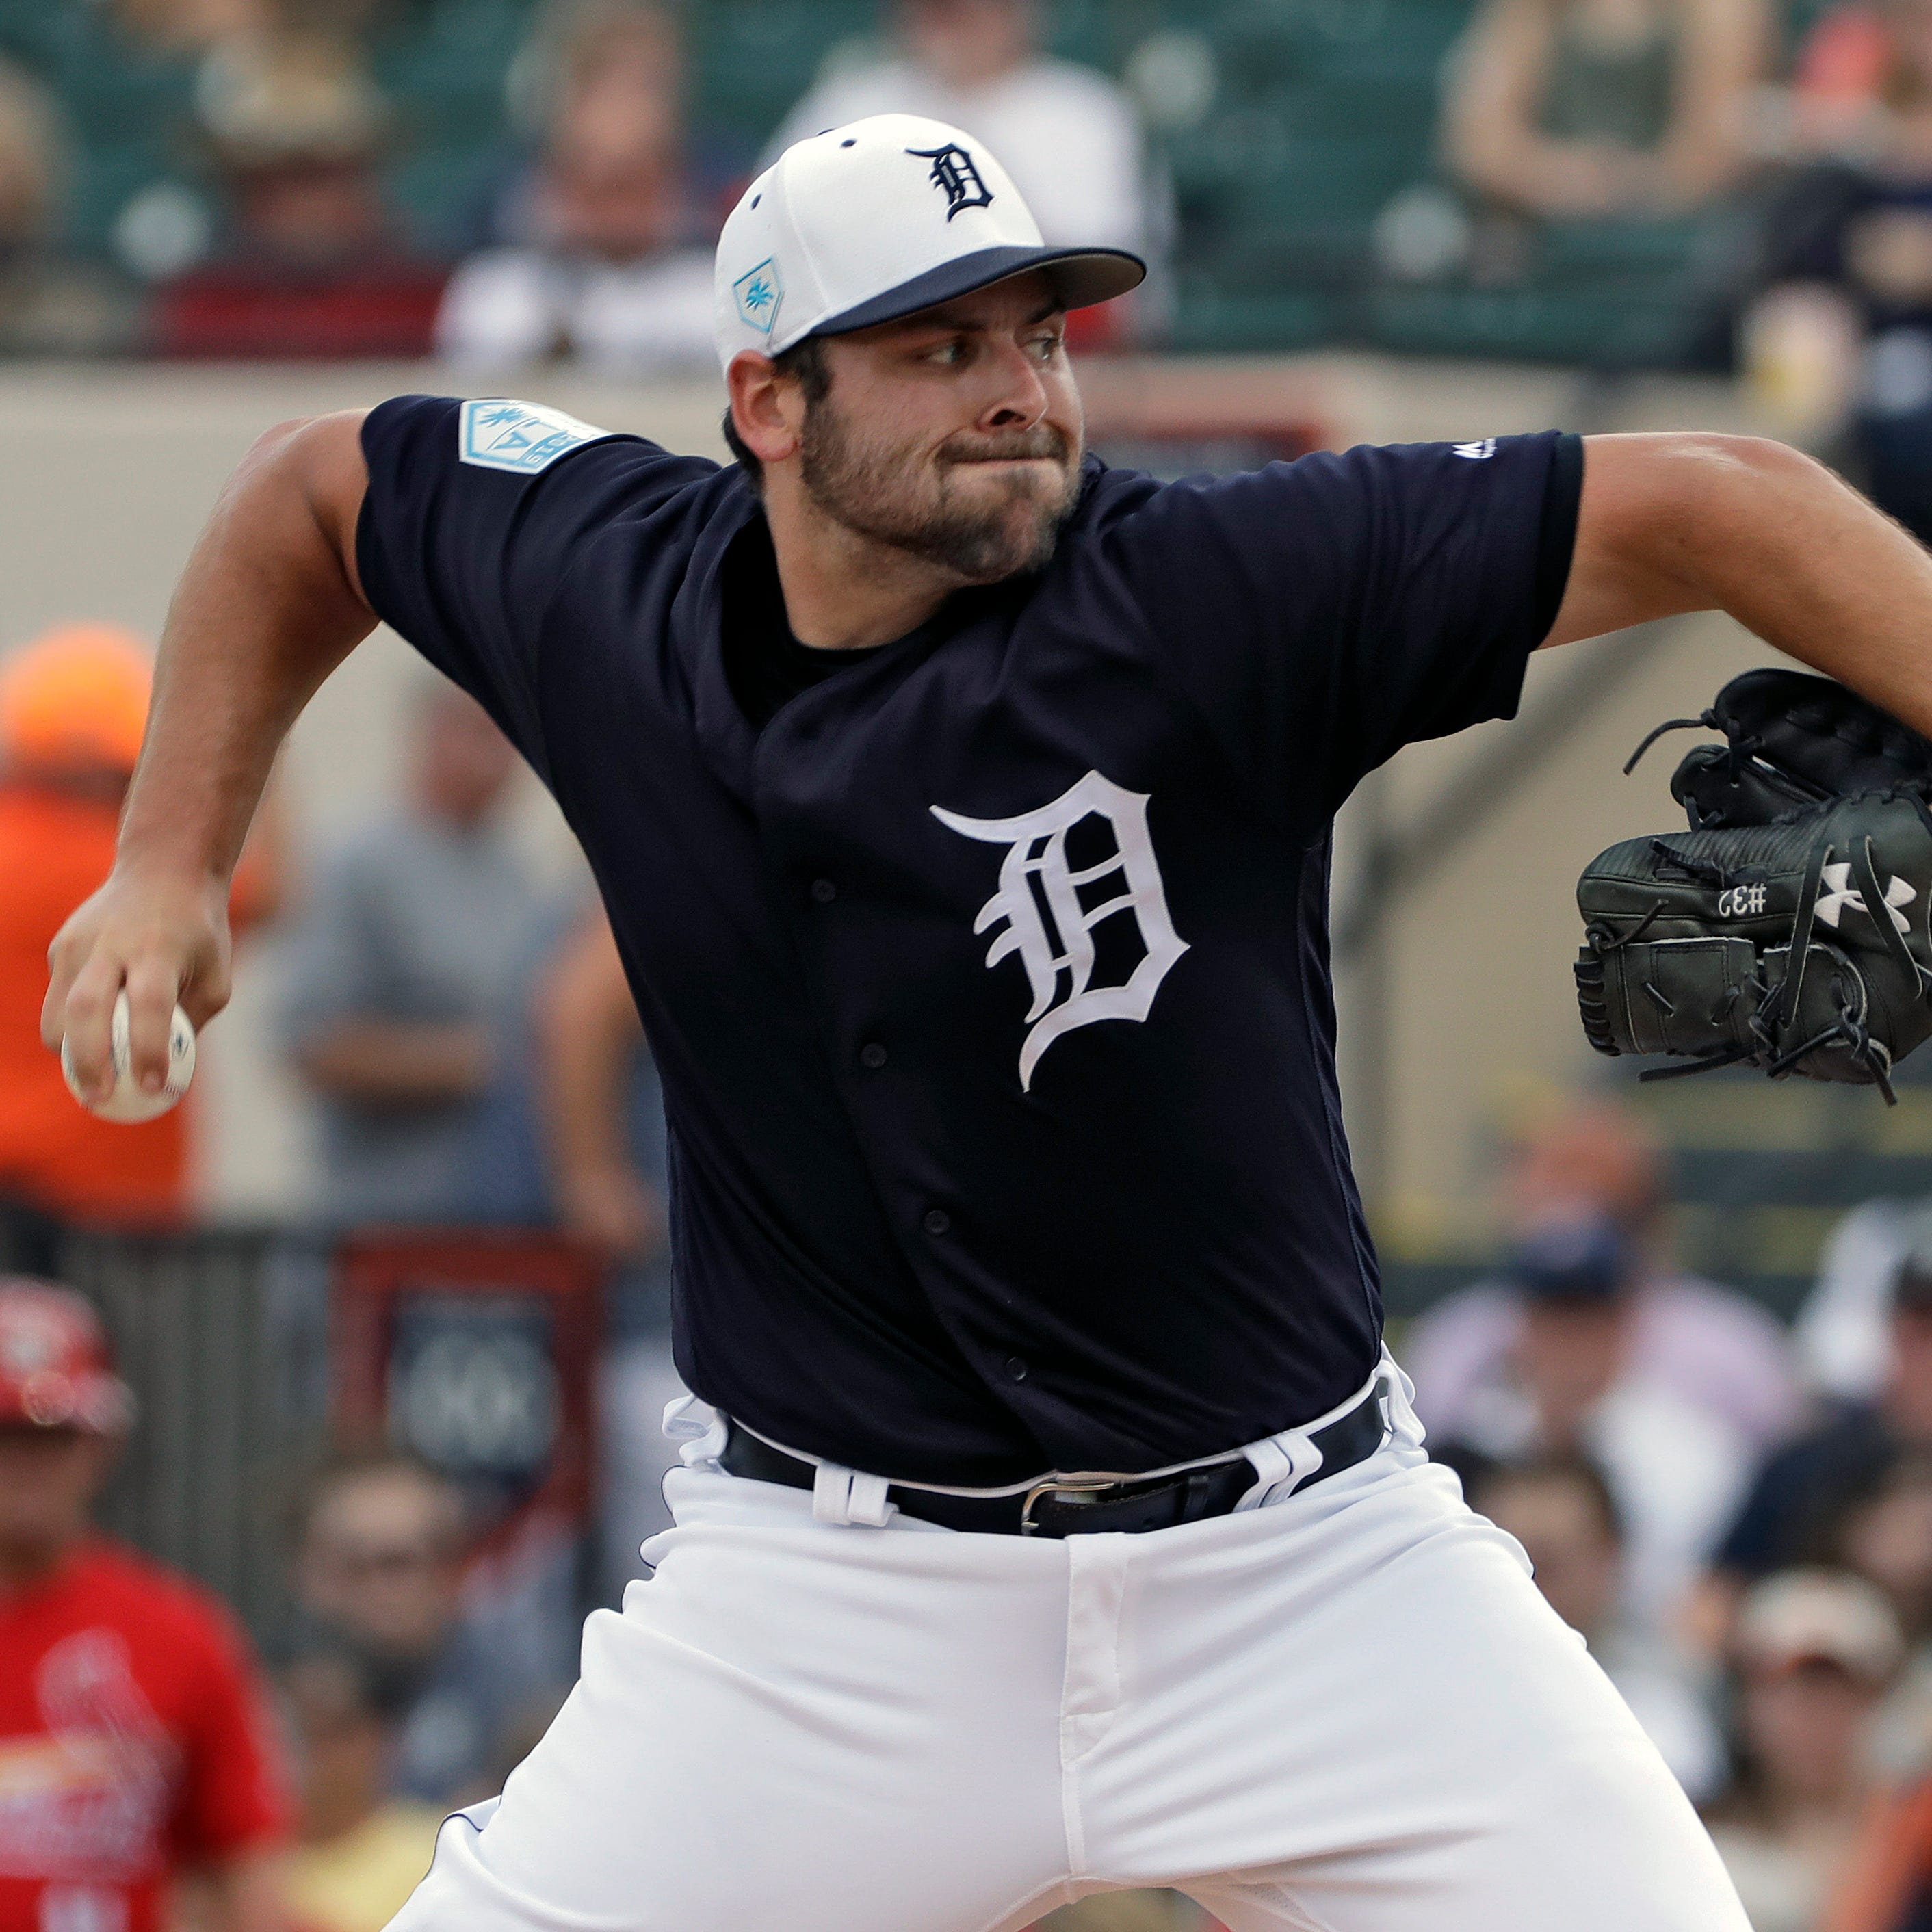 Michael Fulmer shut down indefinitely to refine 'lower-body mechanics'